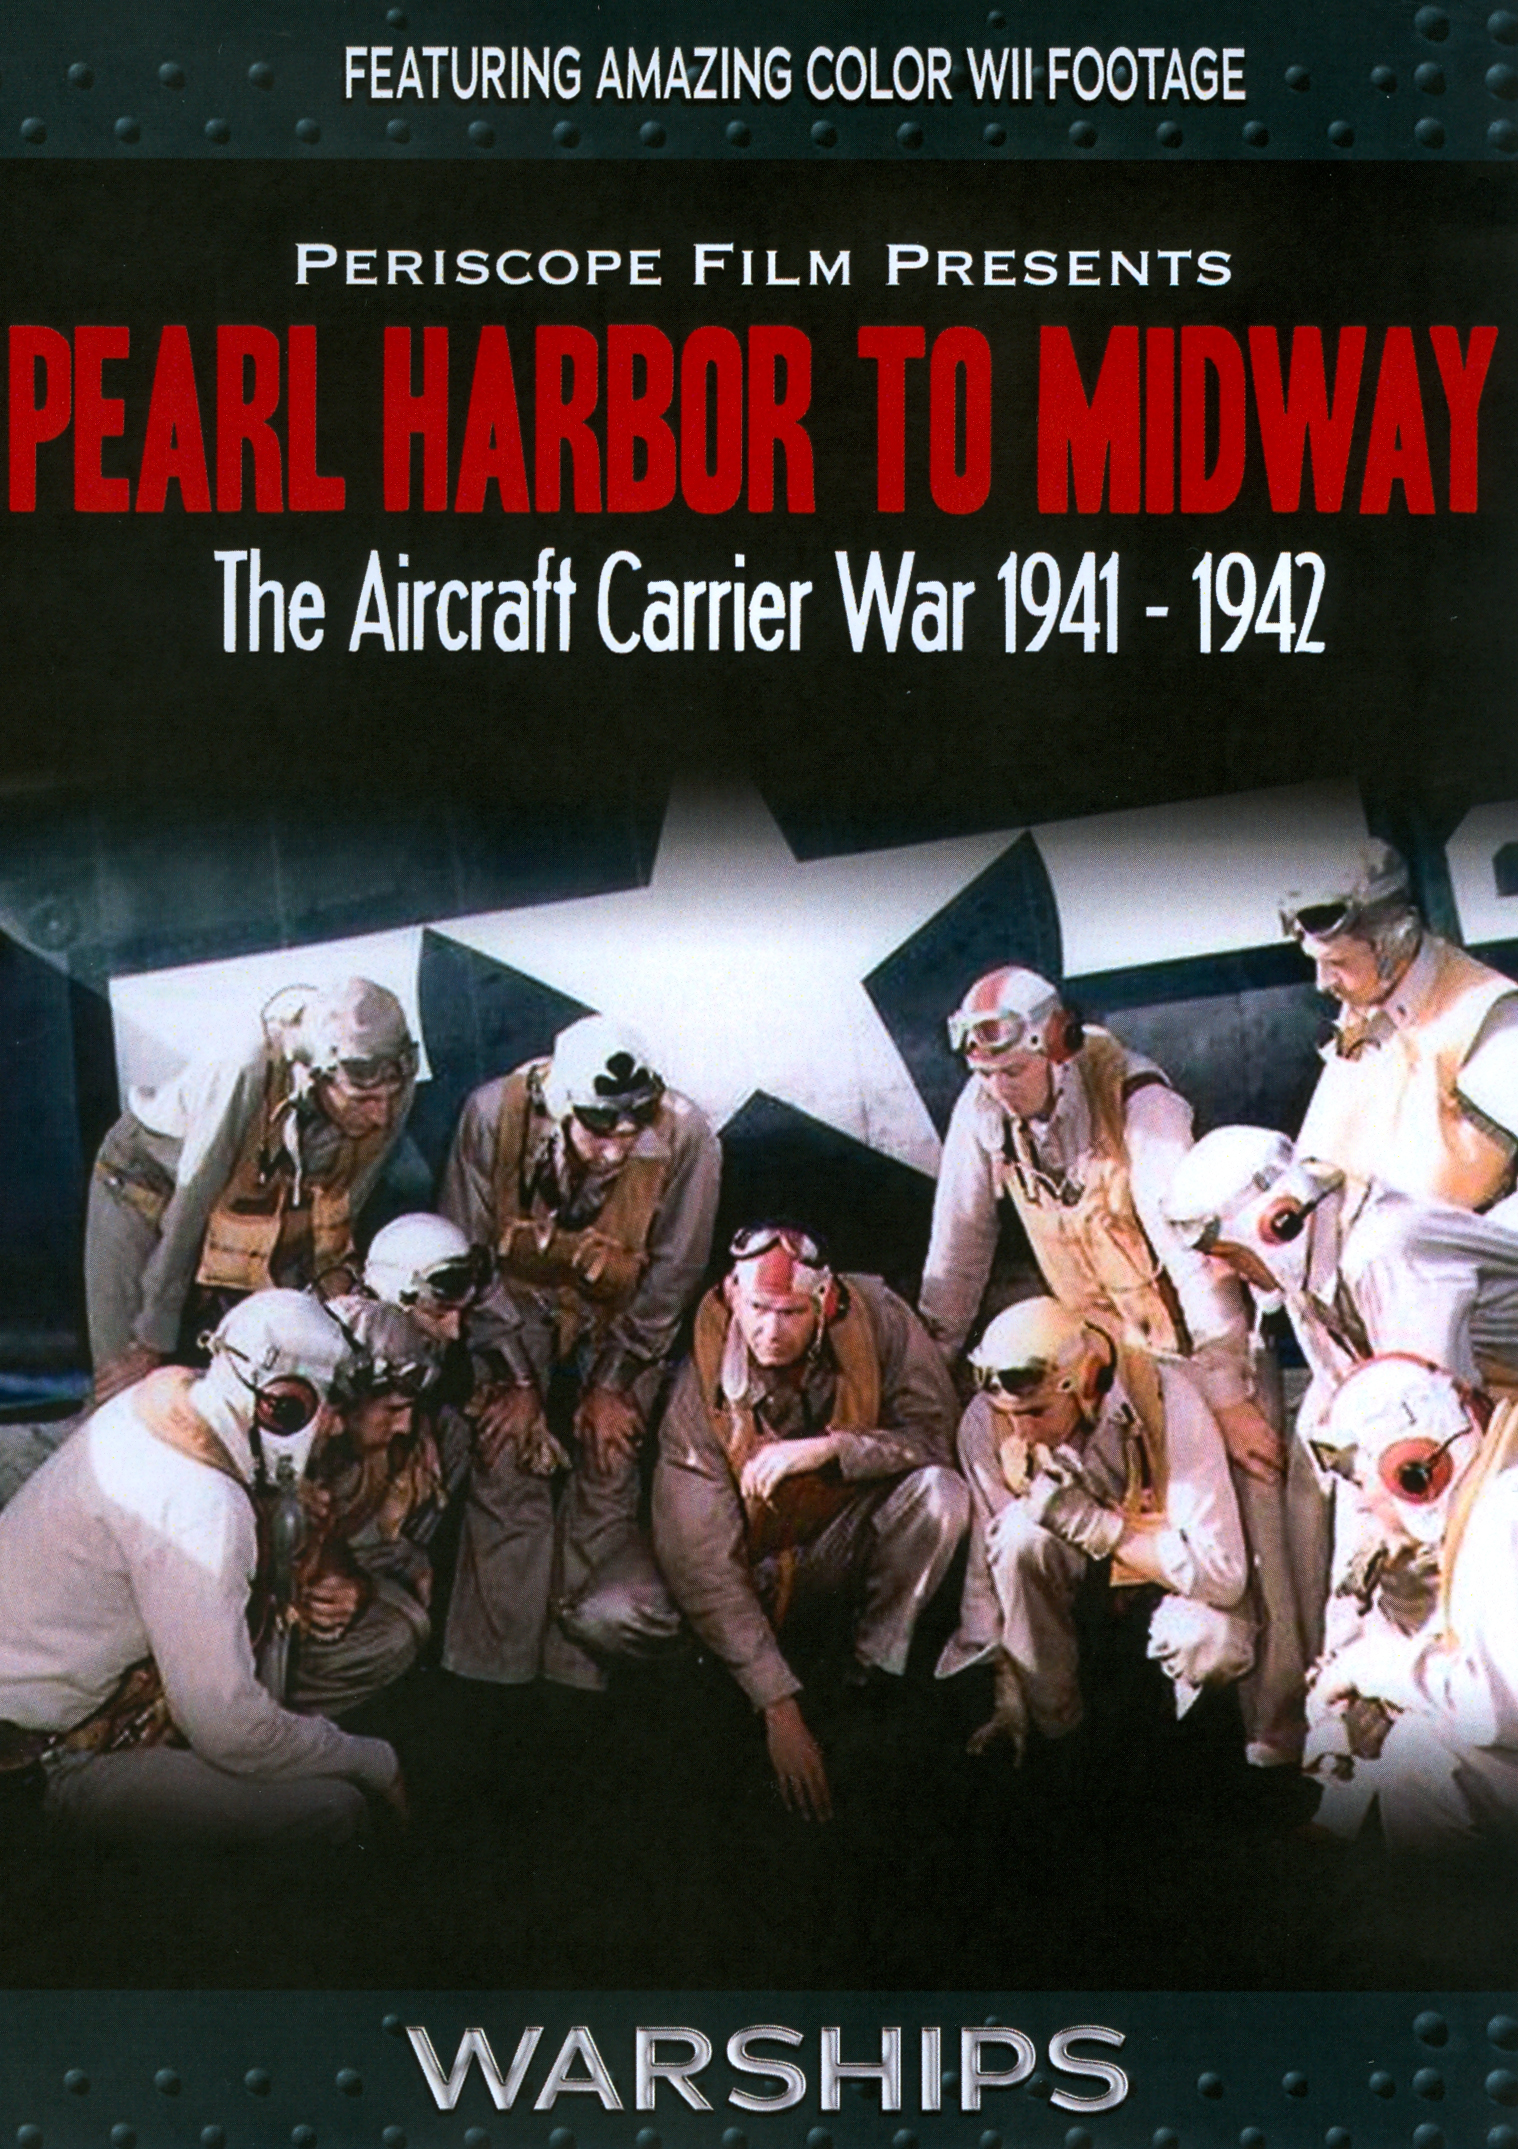 Pearl Harbor to Midway: The Aircraft Carrier War 1941-1942